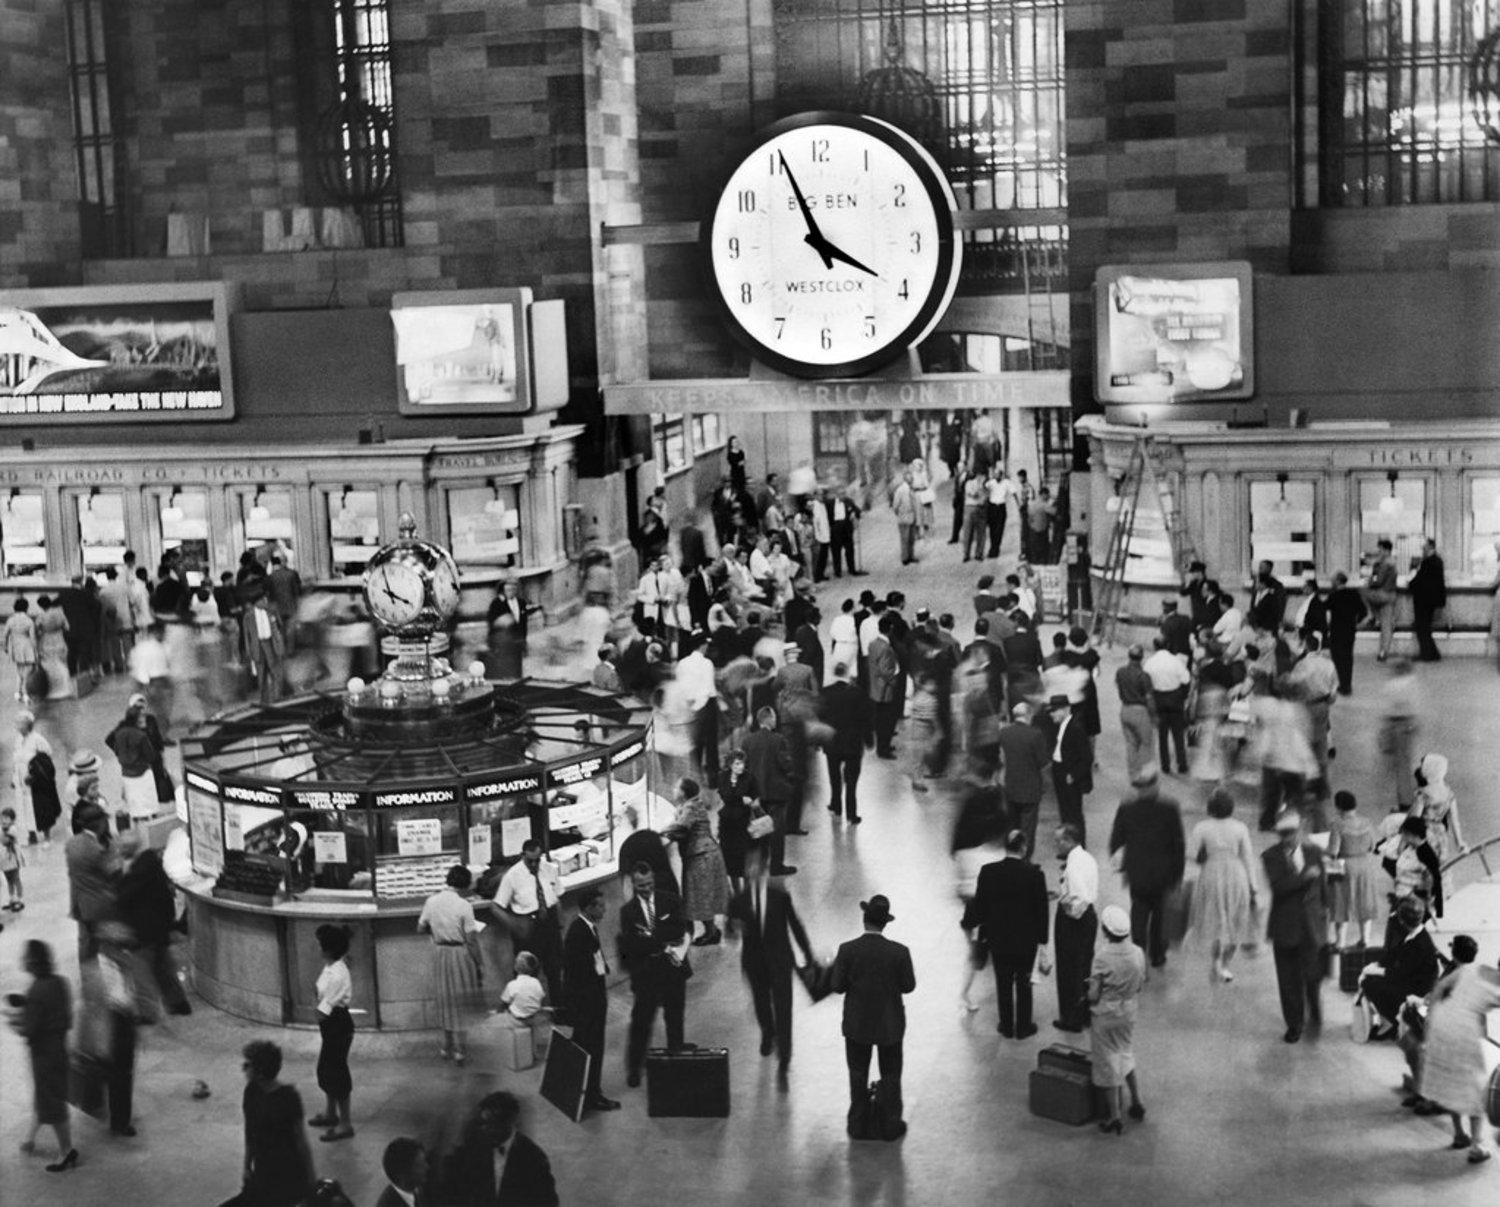 Aug. 7, 1959: A 15-foot clock hung over the bustle of Grand Central Terminal, sporting an advertisement for its maker, Westclox (appearing on Page 19 of this issue). The clock would bear the logos of several companies through the years; eventually, it was removed.